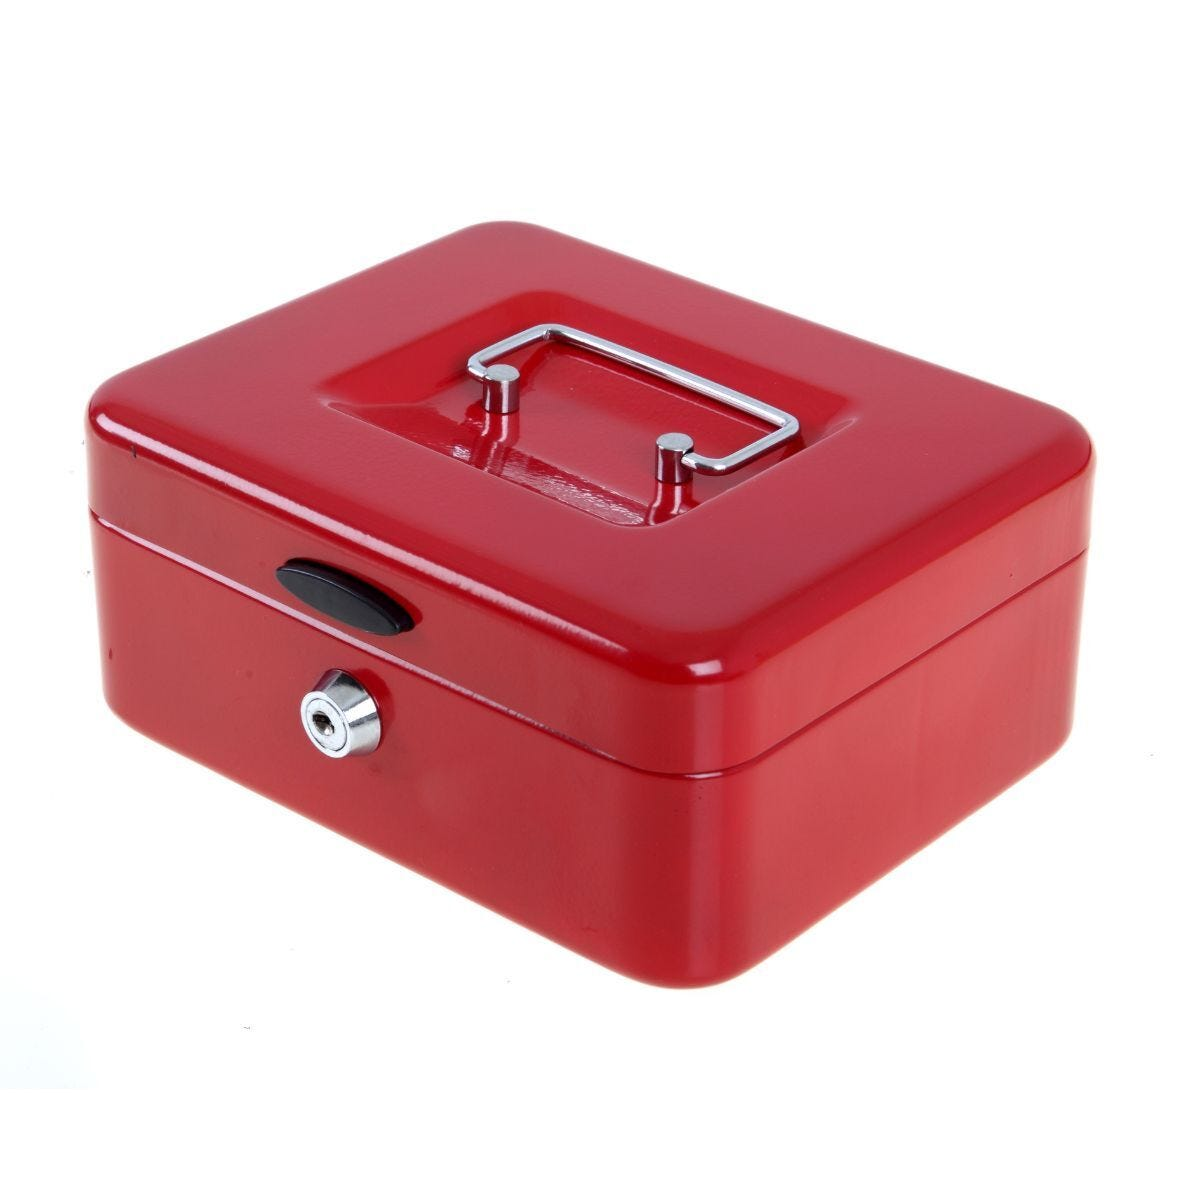 Ryman Button Release Cash Box H90xW200xD170mm Red